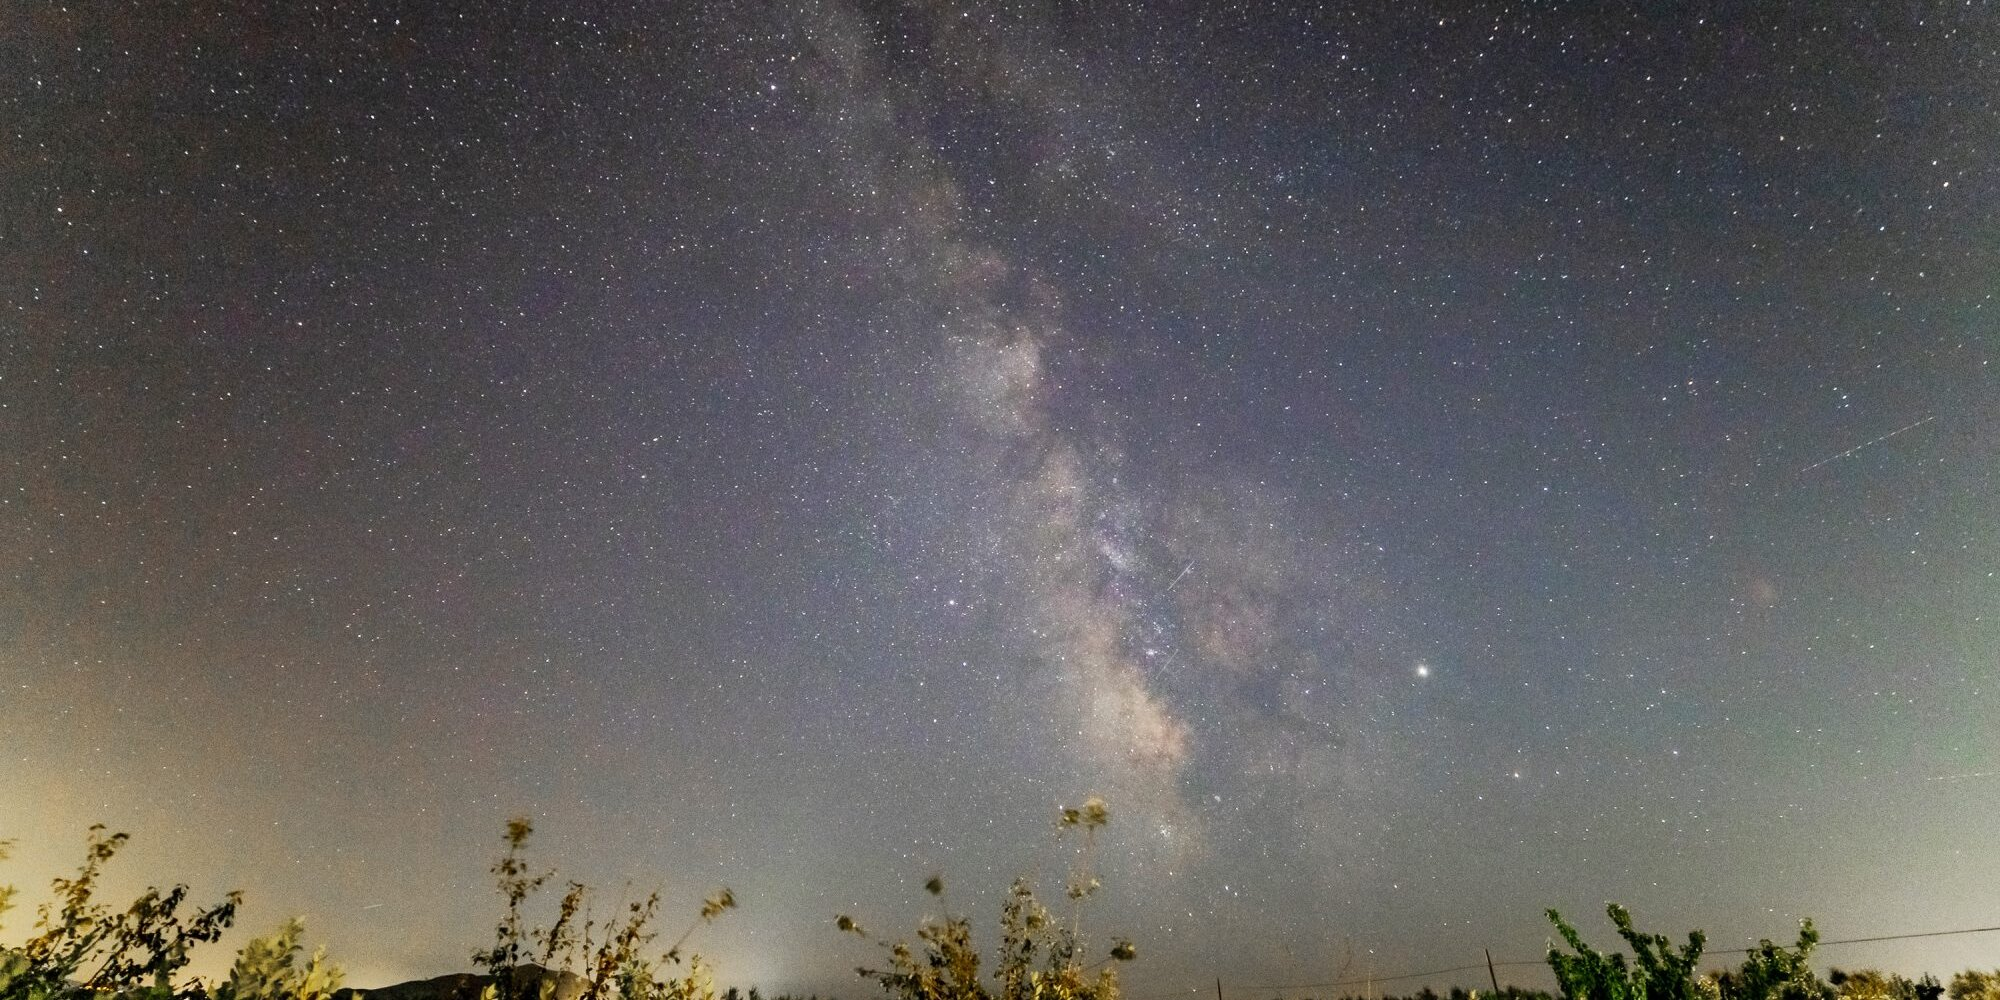 15 Best Places to Stargaze in the U.S.